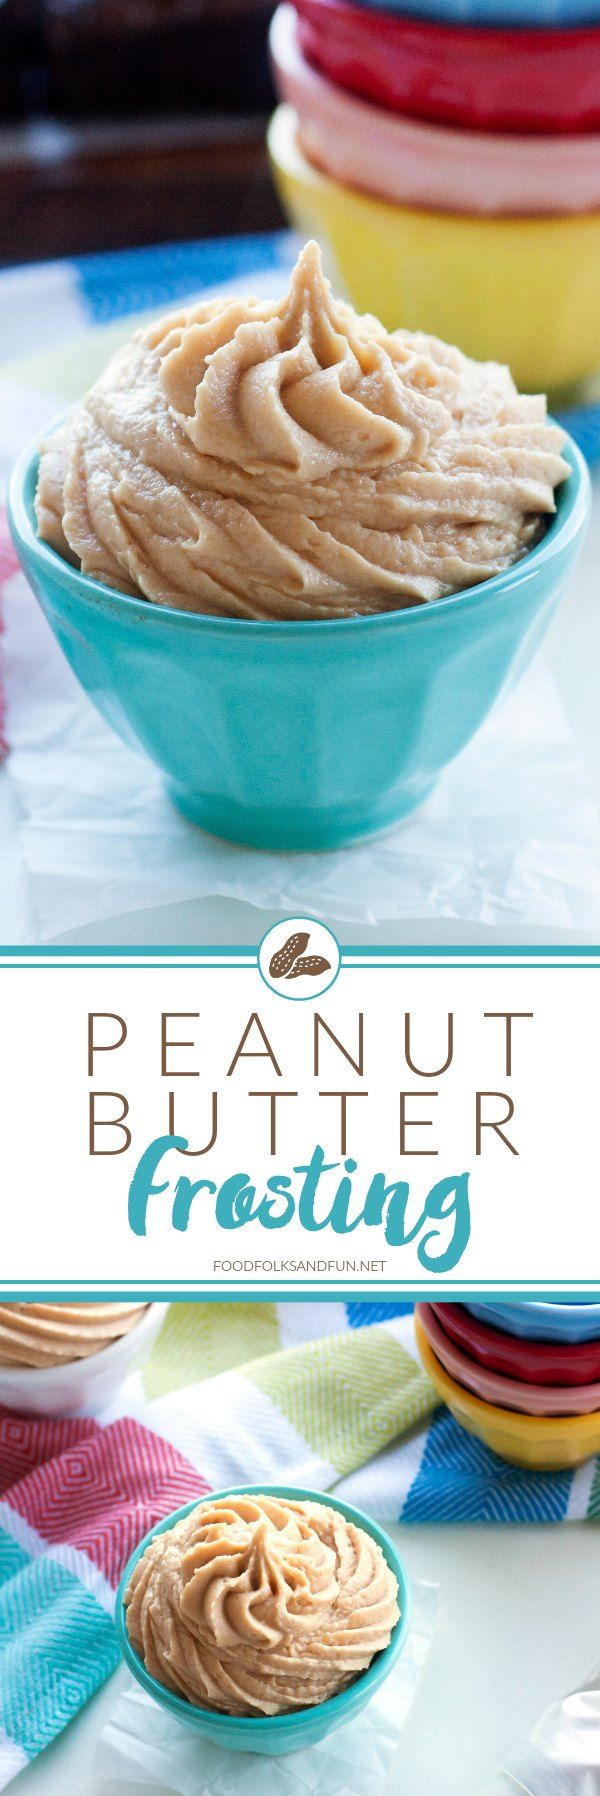 Peanut Butter Frosting – the best ever!